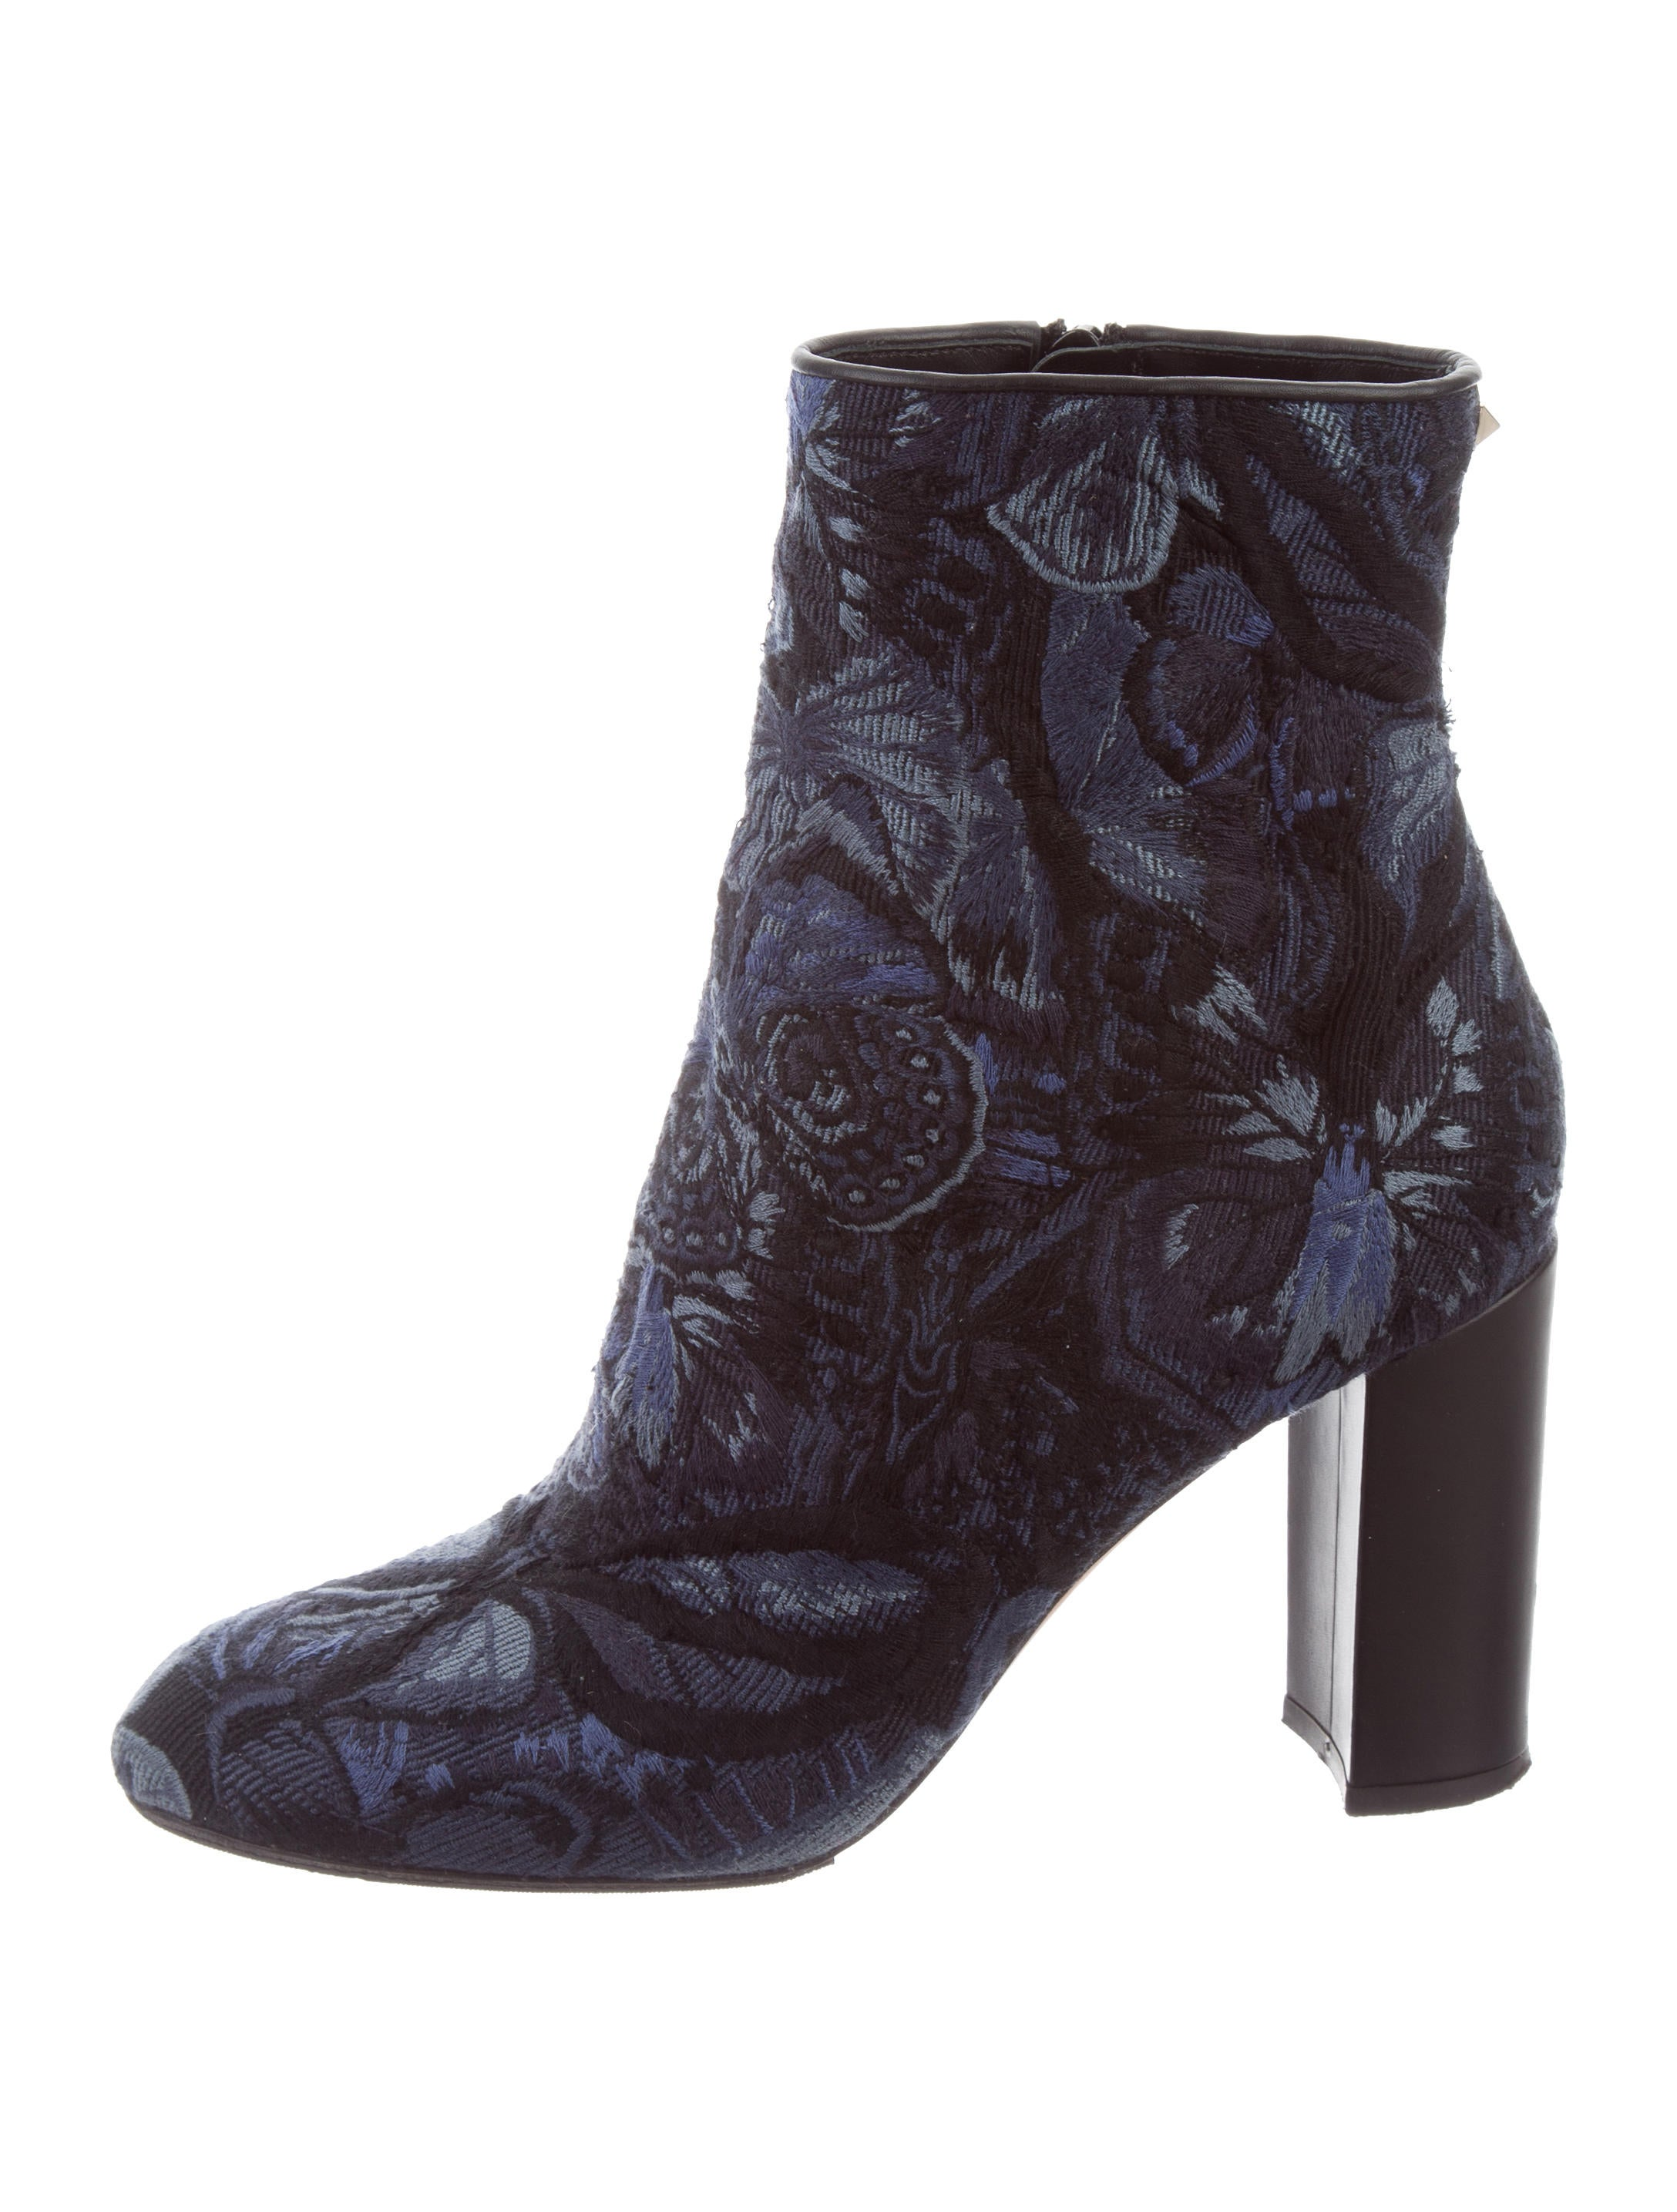 Valentino Camubutterfly Round-Toe Ankle Boots sale release dates WLGBMiiD